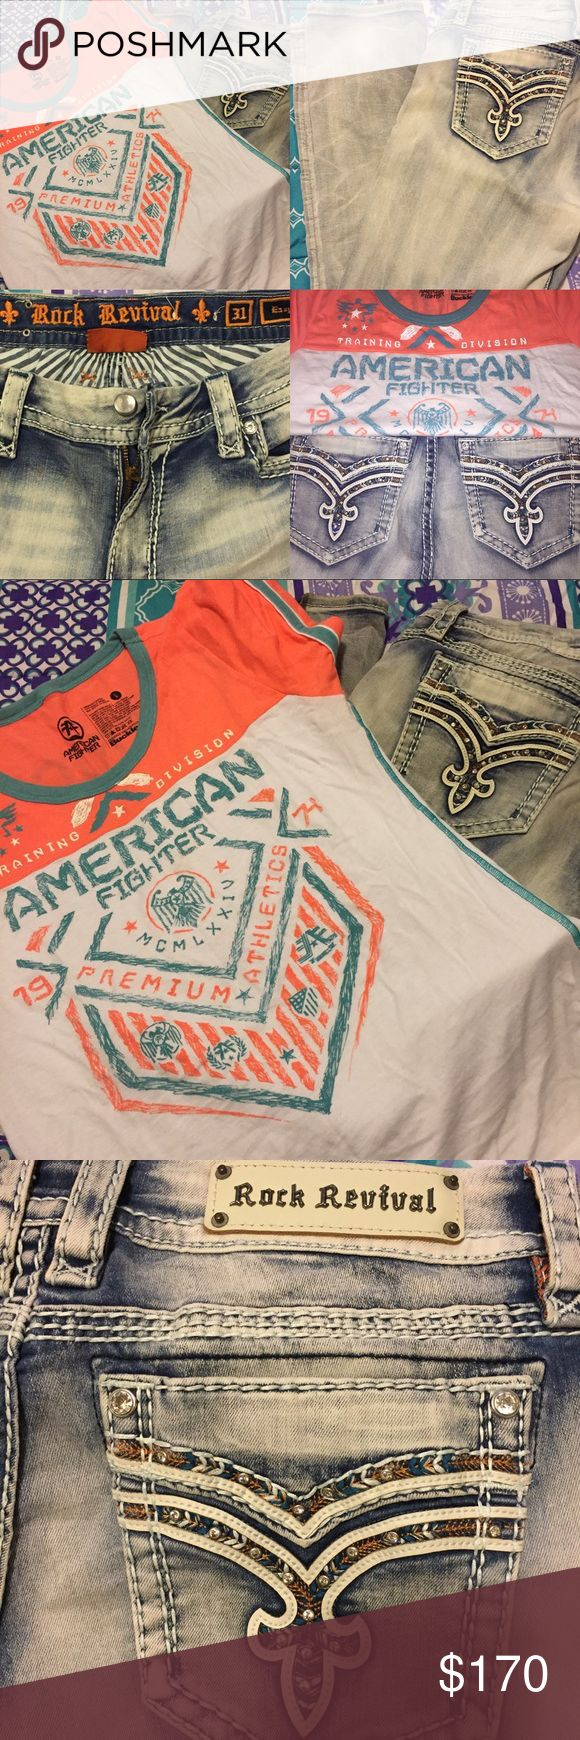 American Fighter & Rock Revival Set American Fighter Shirt (L) and Rock Revival Jeans (31/easy straight) outfit.  Orange and teal designs on both shirt and pants. Both only worn once.  *WILL SELL SEPARATE* $35 for shirt $90 for pants Rock Revival Jeans Straight Leg